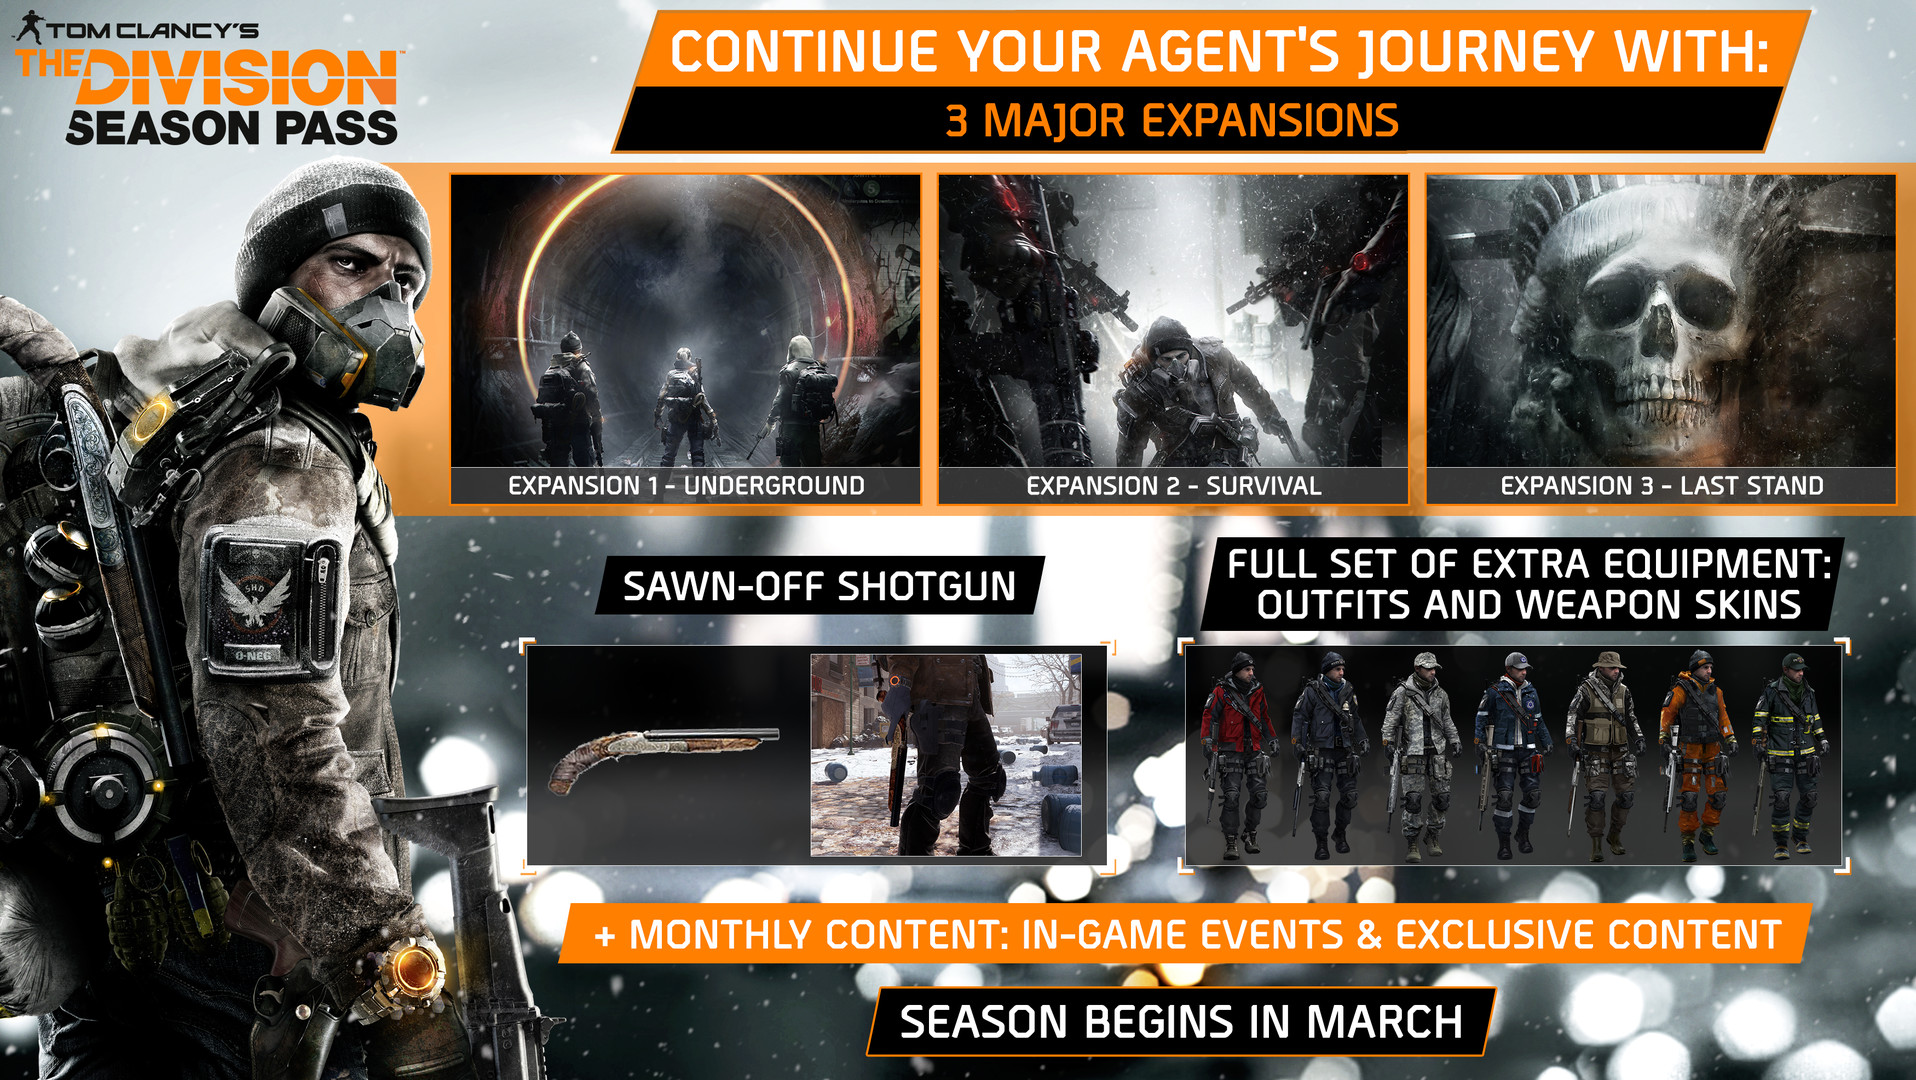 Tom Clancys The Division Season Pass 2016 Promotional